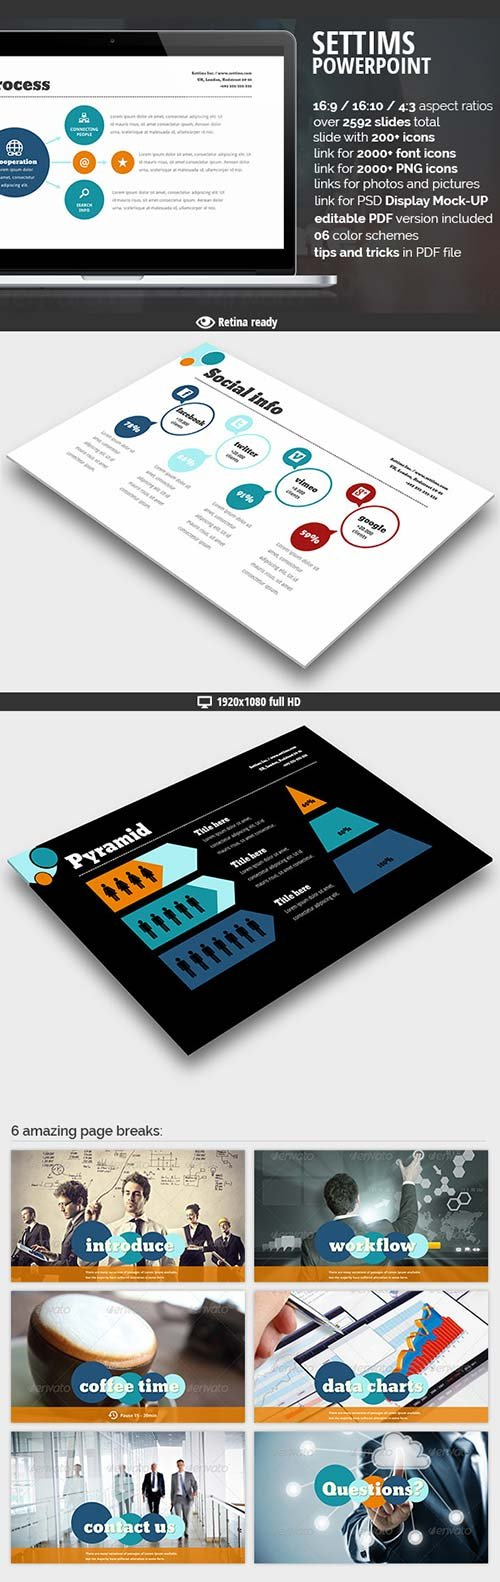 GraphicRiver Settims Powerpoint Presentation